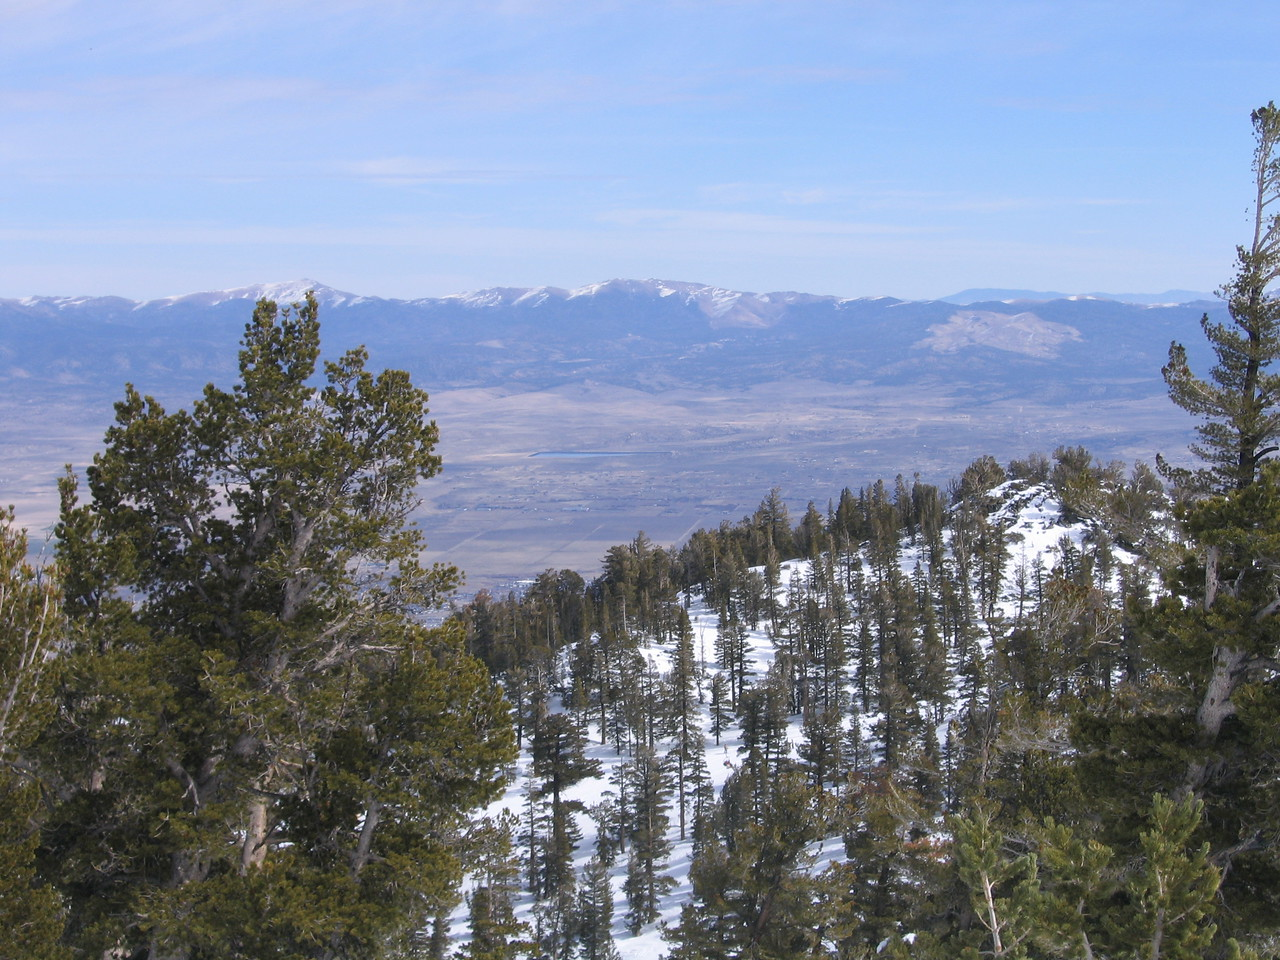 Snowy mountains and the vast dryness of Nevada.